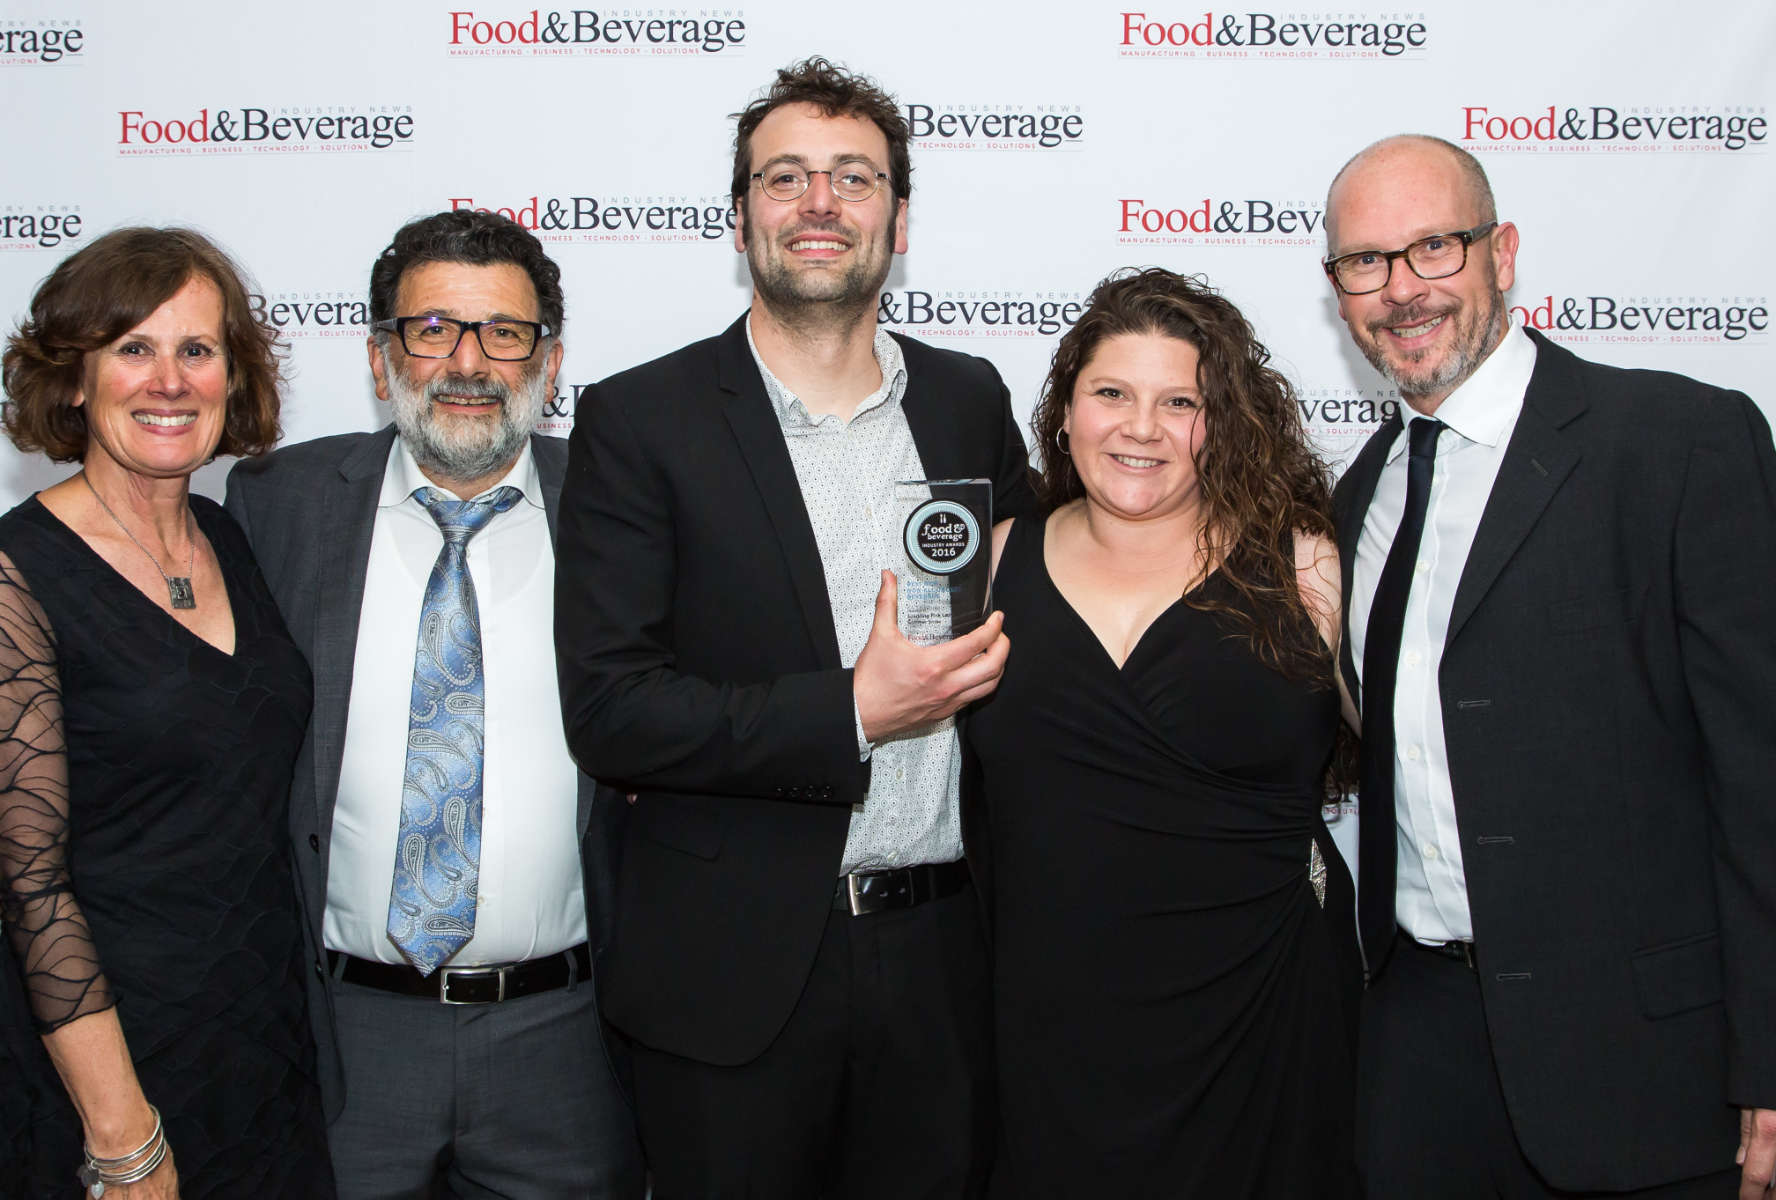 """Left to Right: Anne Russo, Robert Russo, Nick Russo, Bernadette Russo and Luke Southwell. Immediately after receiving the award for """"Best new Non-alcoholic Beverage"""" in Sydney 2016."""